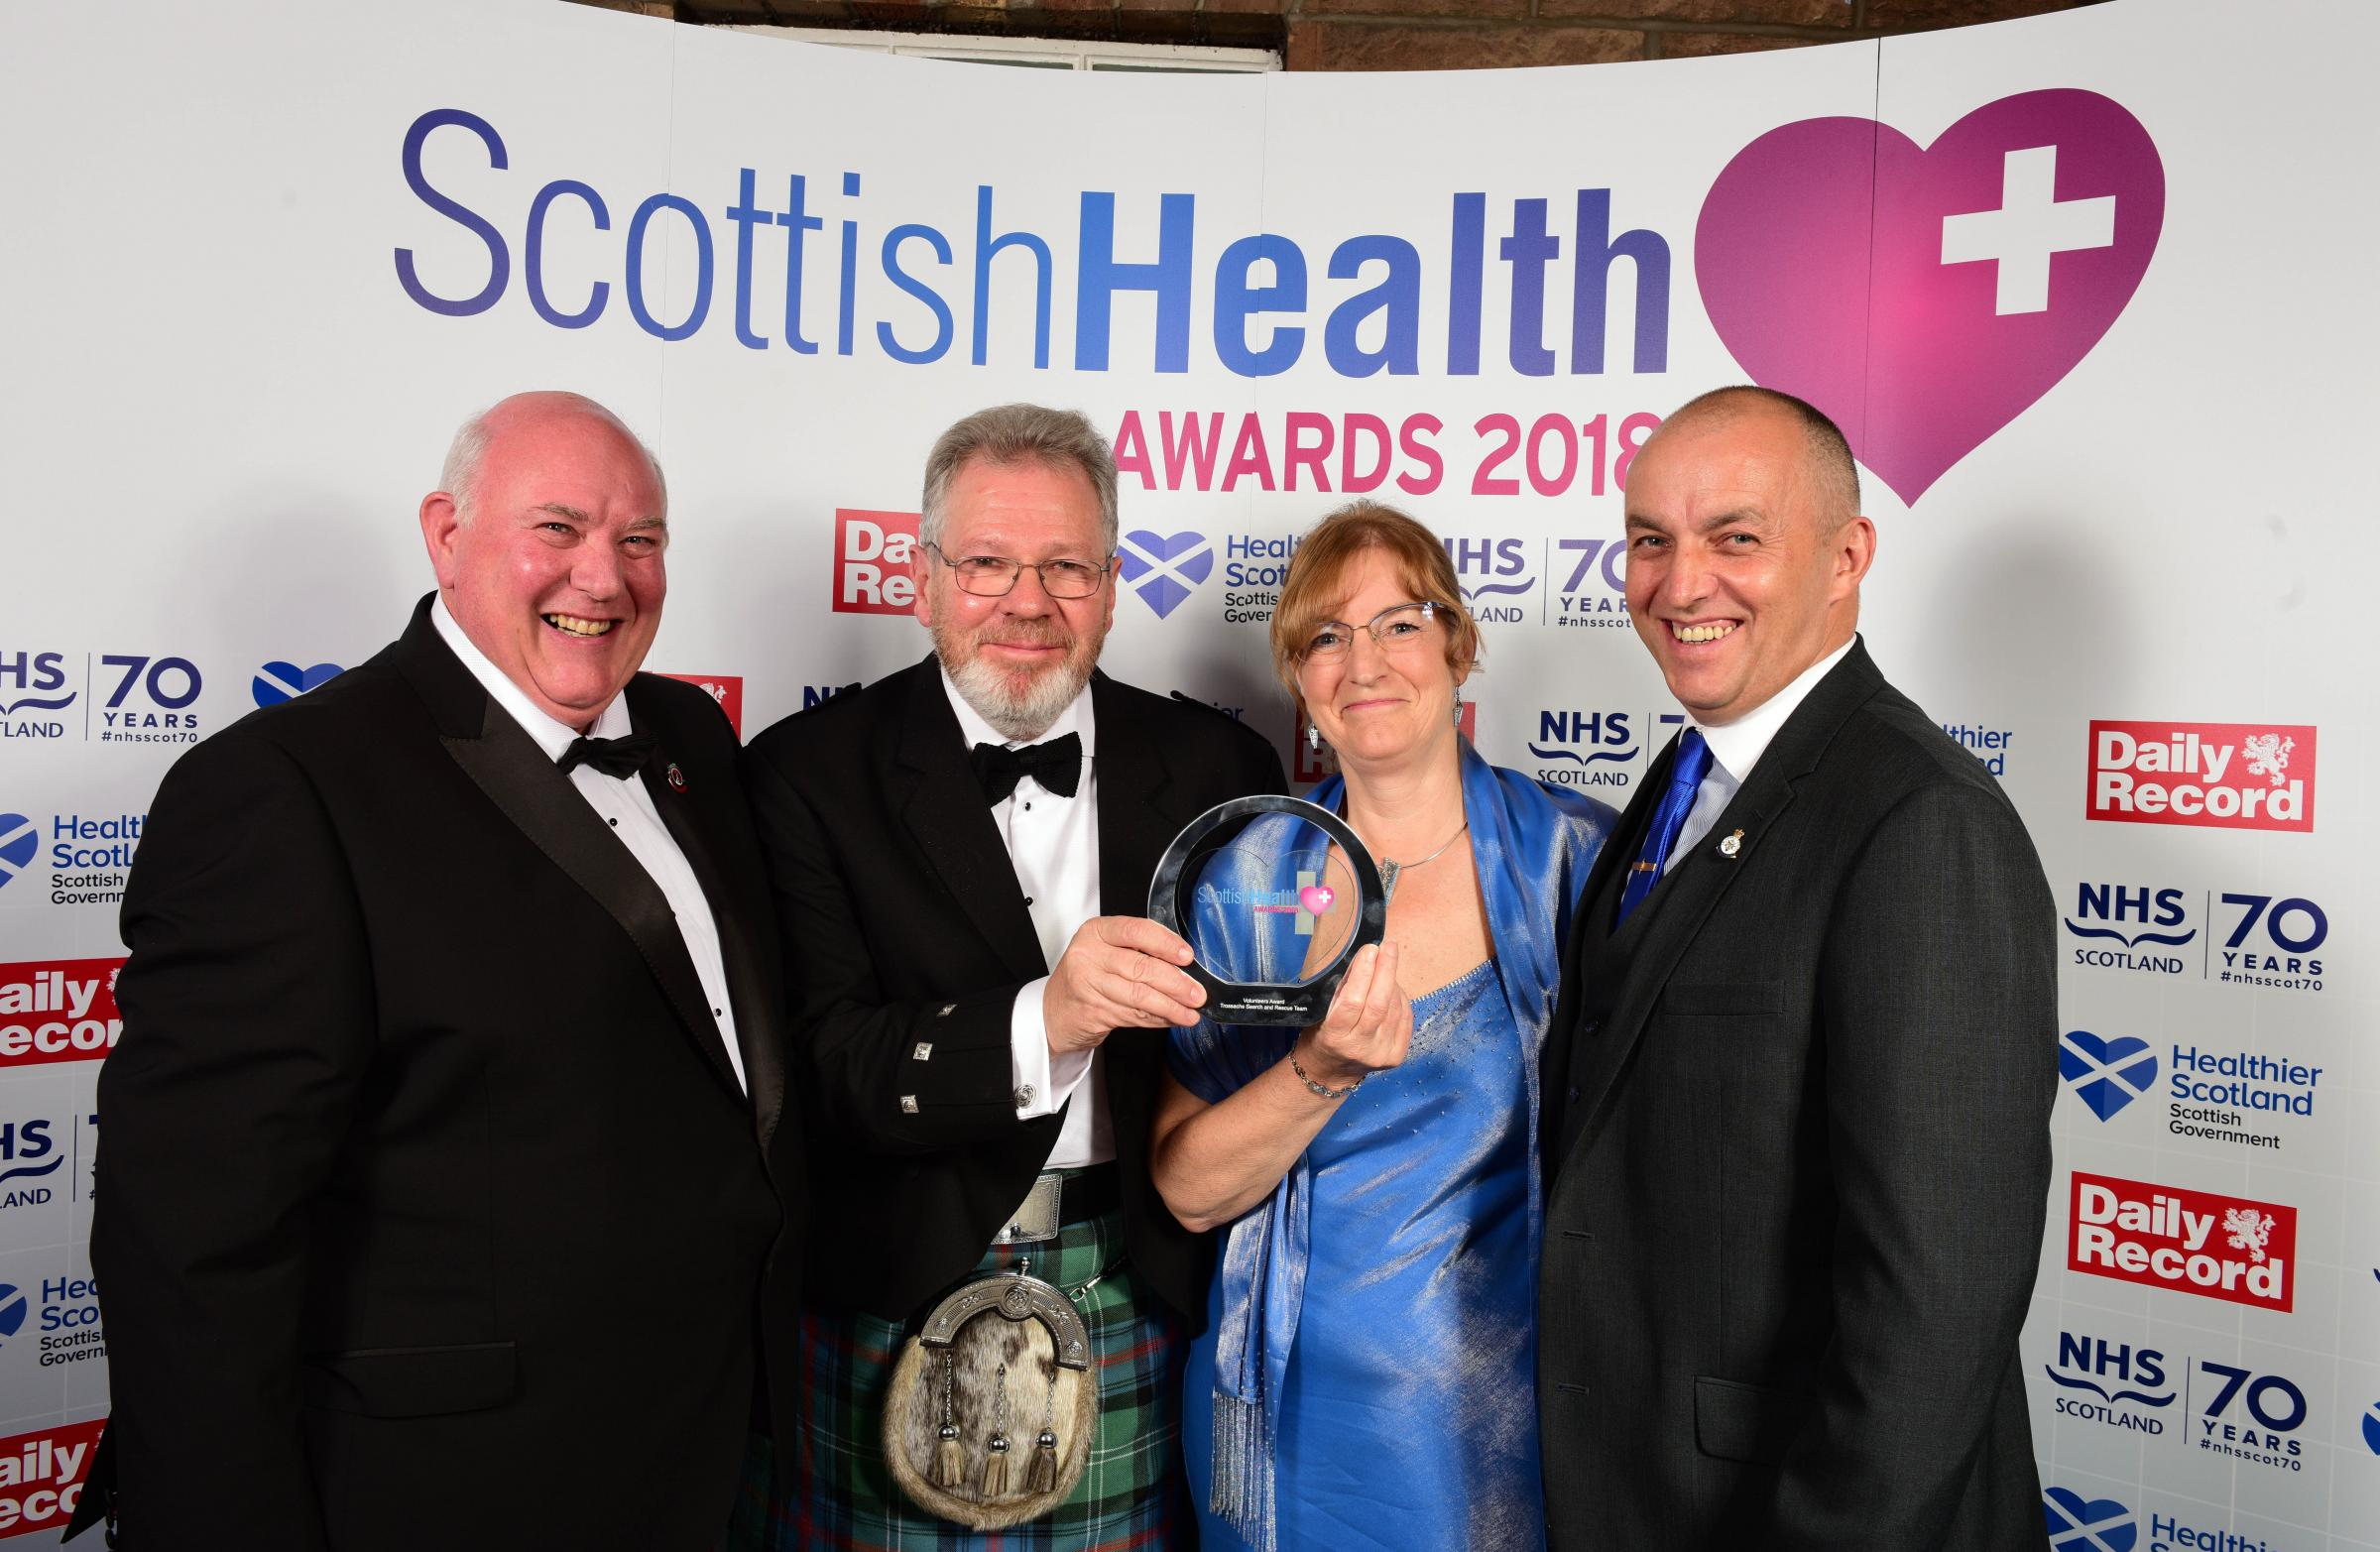 Scottish Health Awards 2018 at the Corn Exchange, Edinburgh. Volunteers award - Trossachs Search & Rescue Team